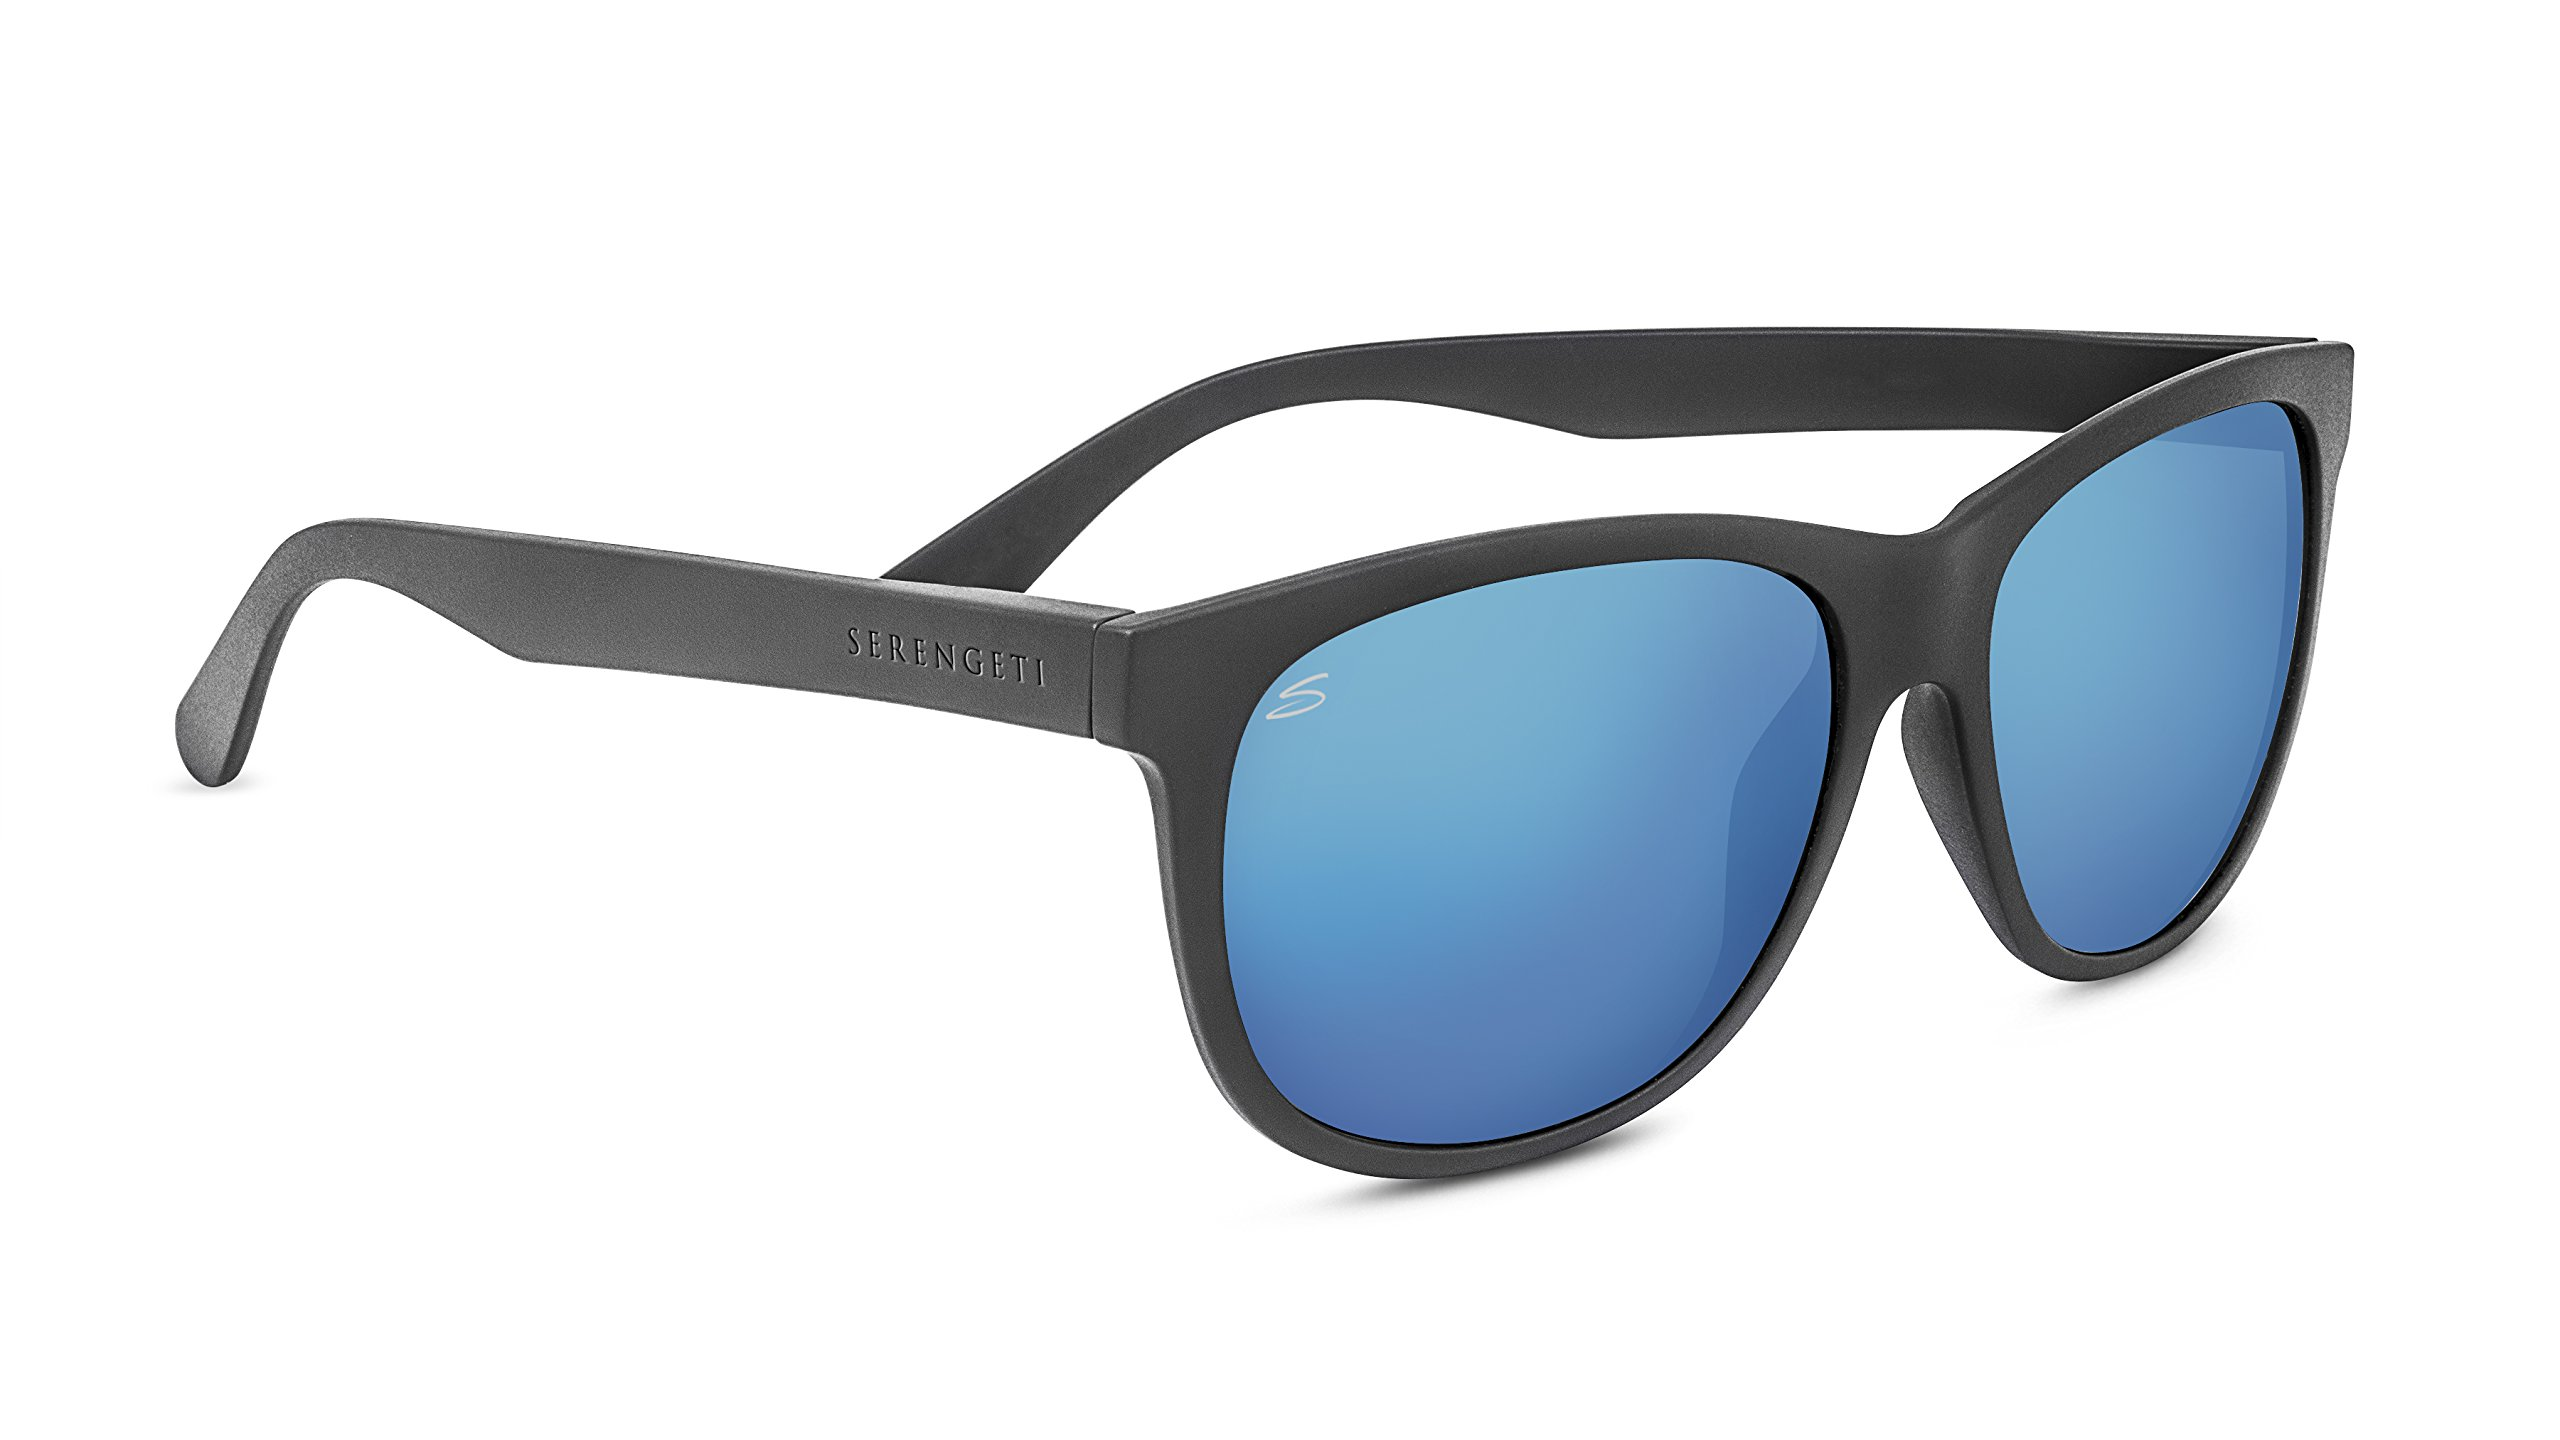 Serengeti 8362 Ostuni Polarized 555NM Sunglasses, Sanded Dark Gray by Serengeti